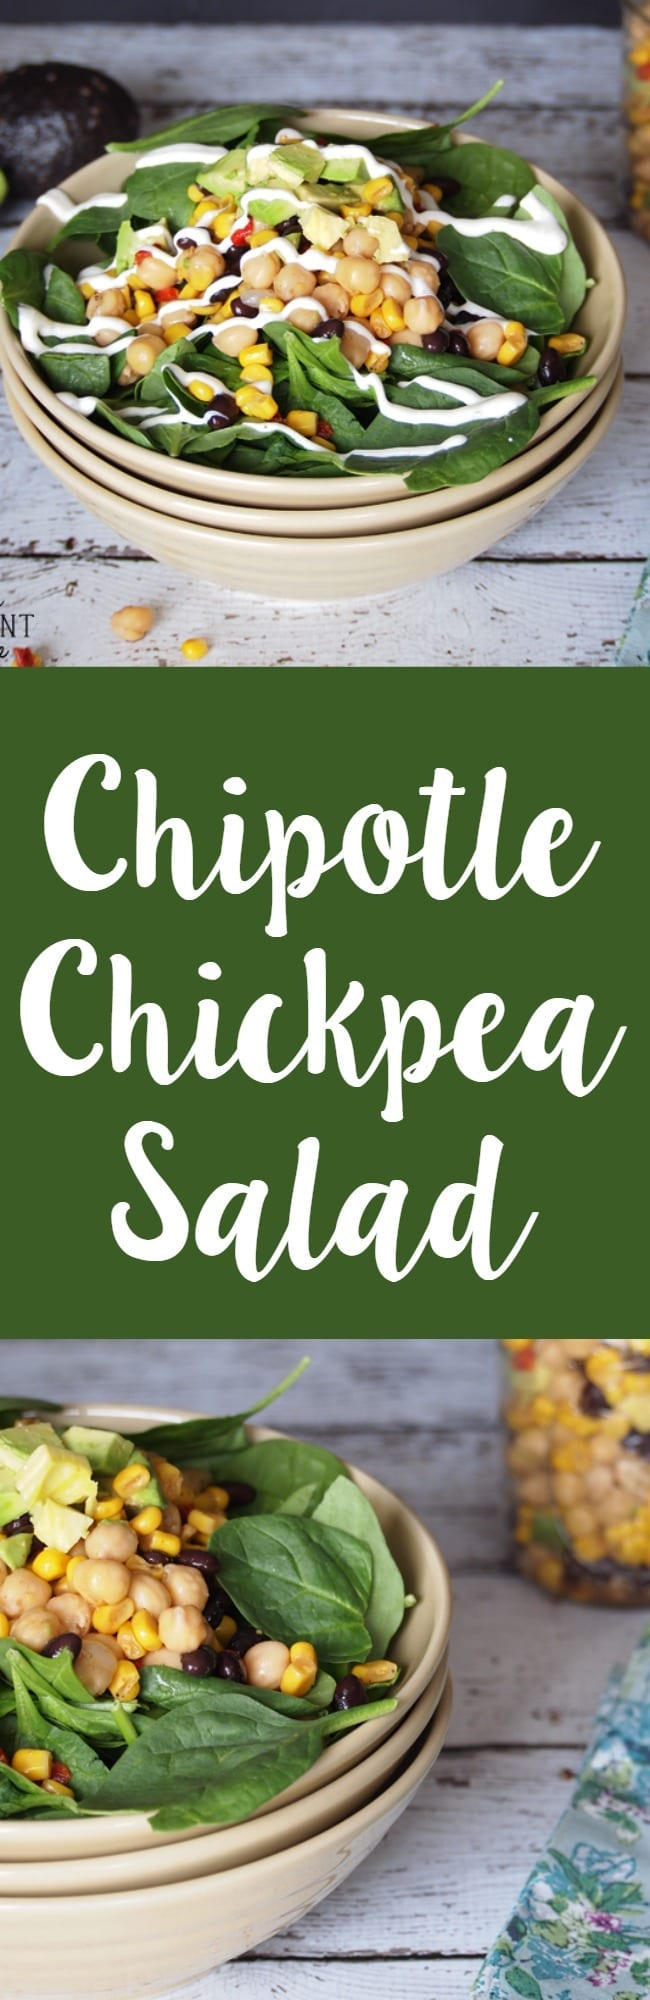 Chipotle chickpea salad